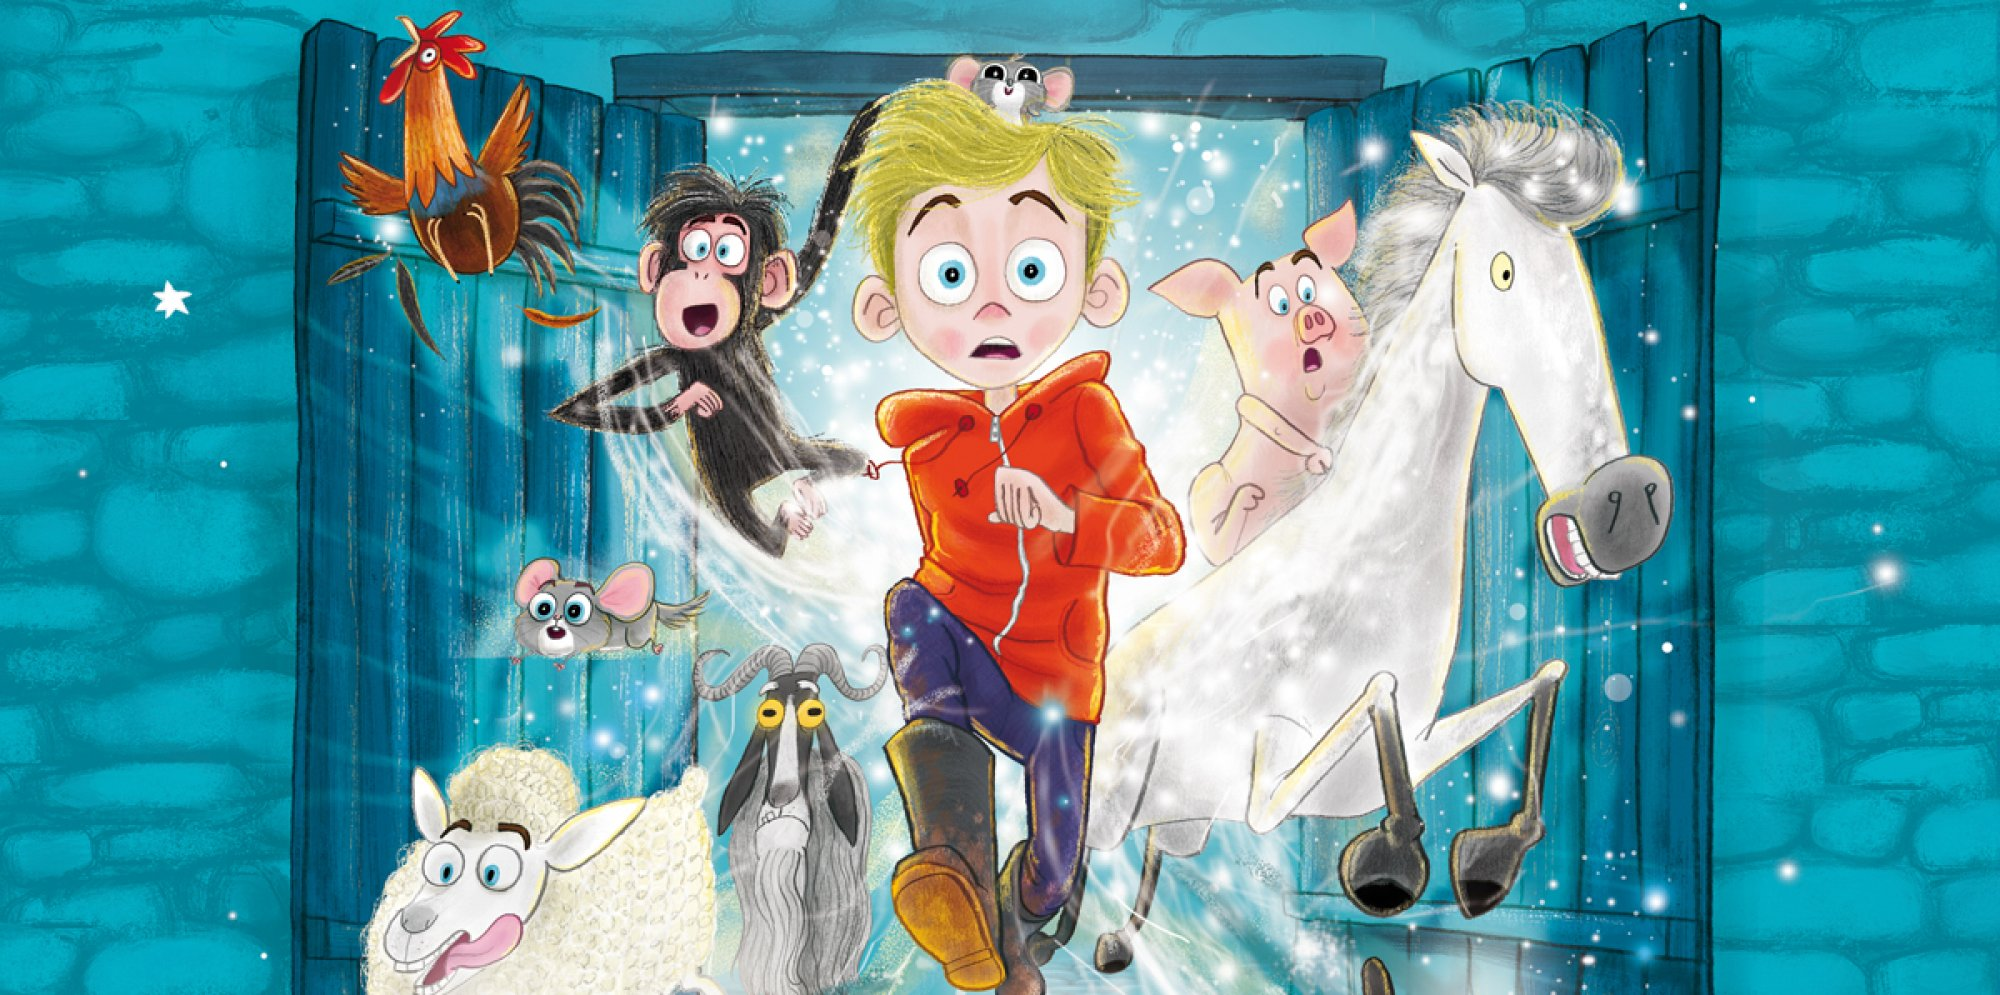 David Baddiel's Animalcolm - Malcolm and a host of animals bursting out of a door